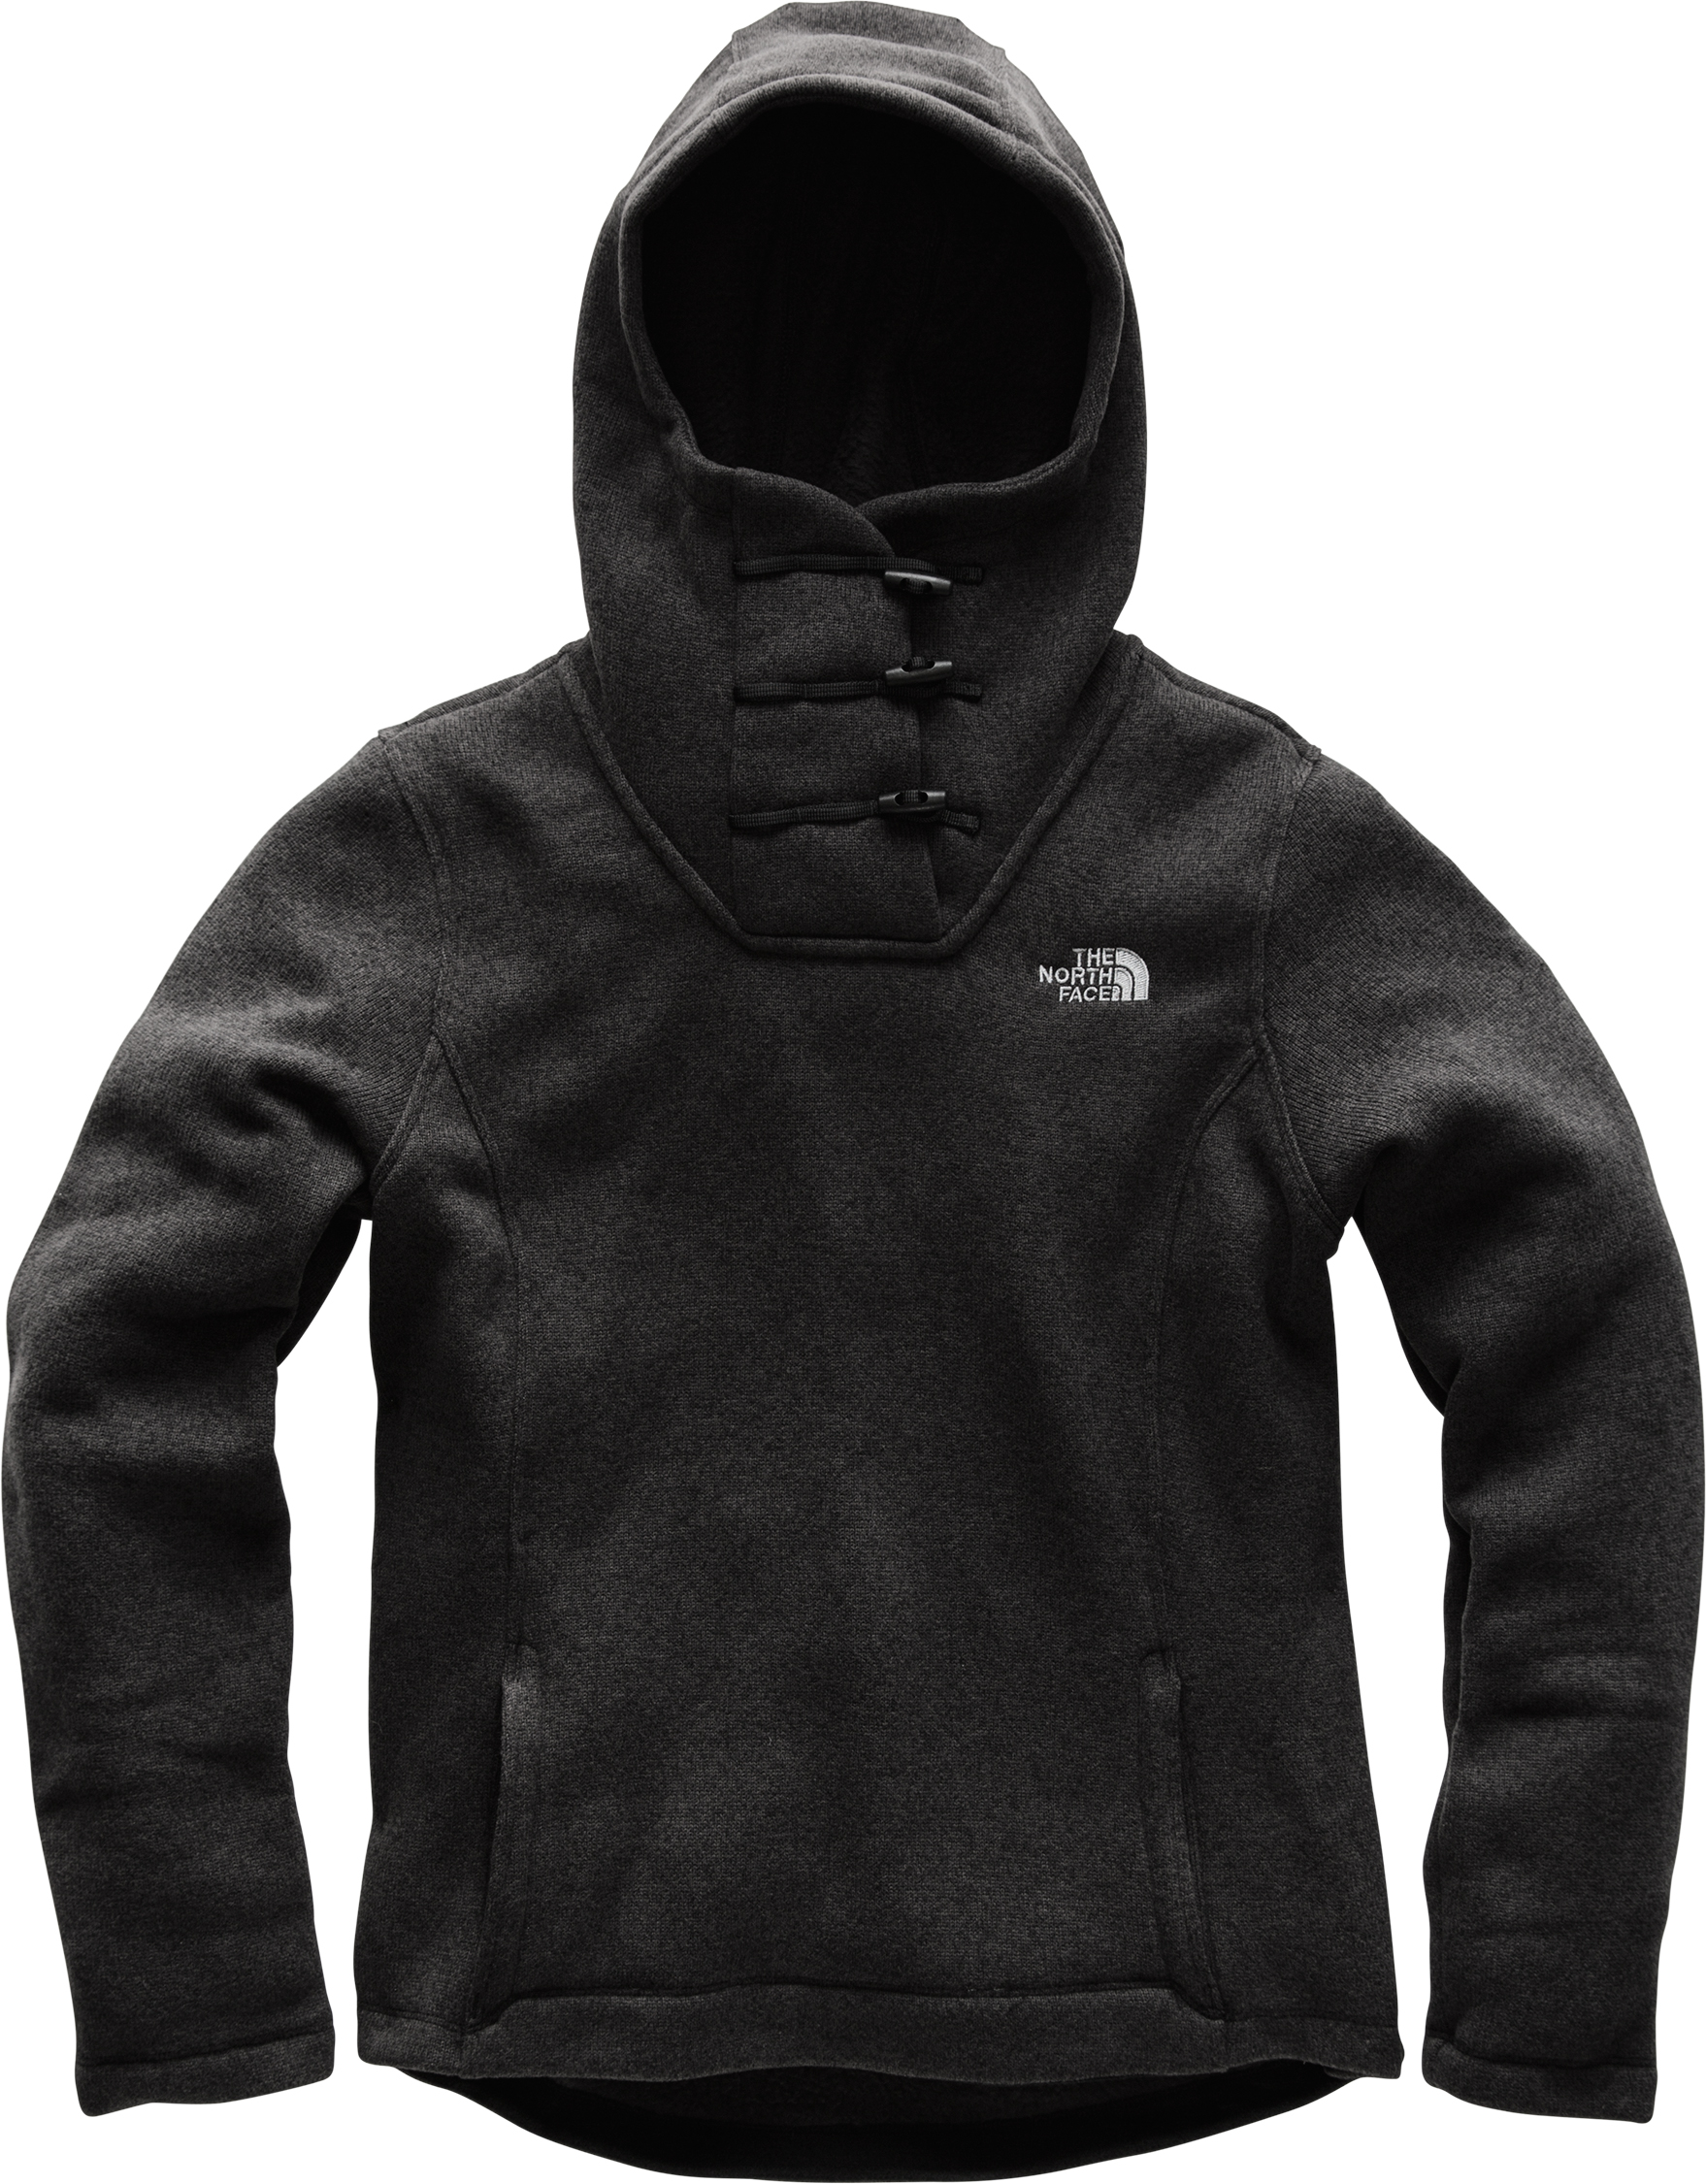 5e8df0641 The North Face Crescent Hooded Pullover - Women's